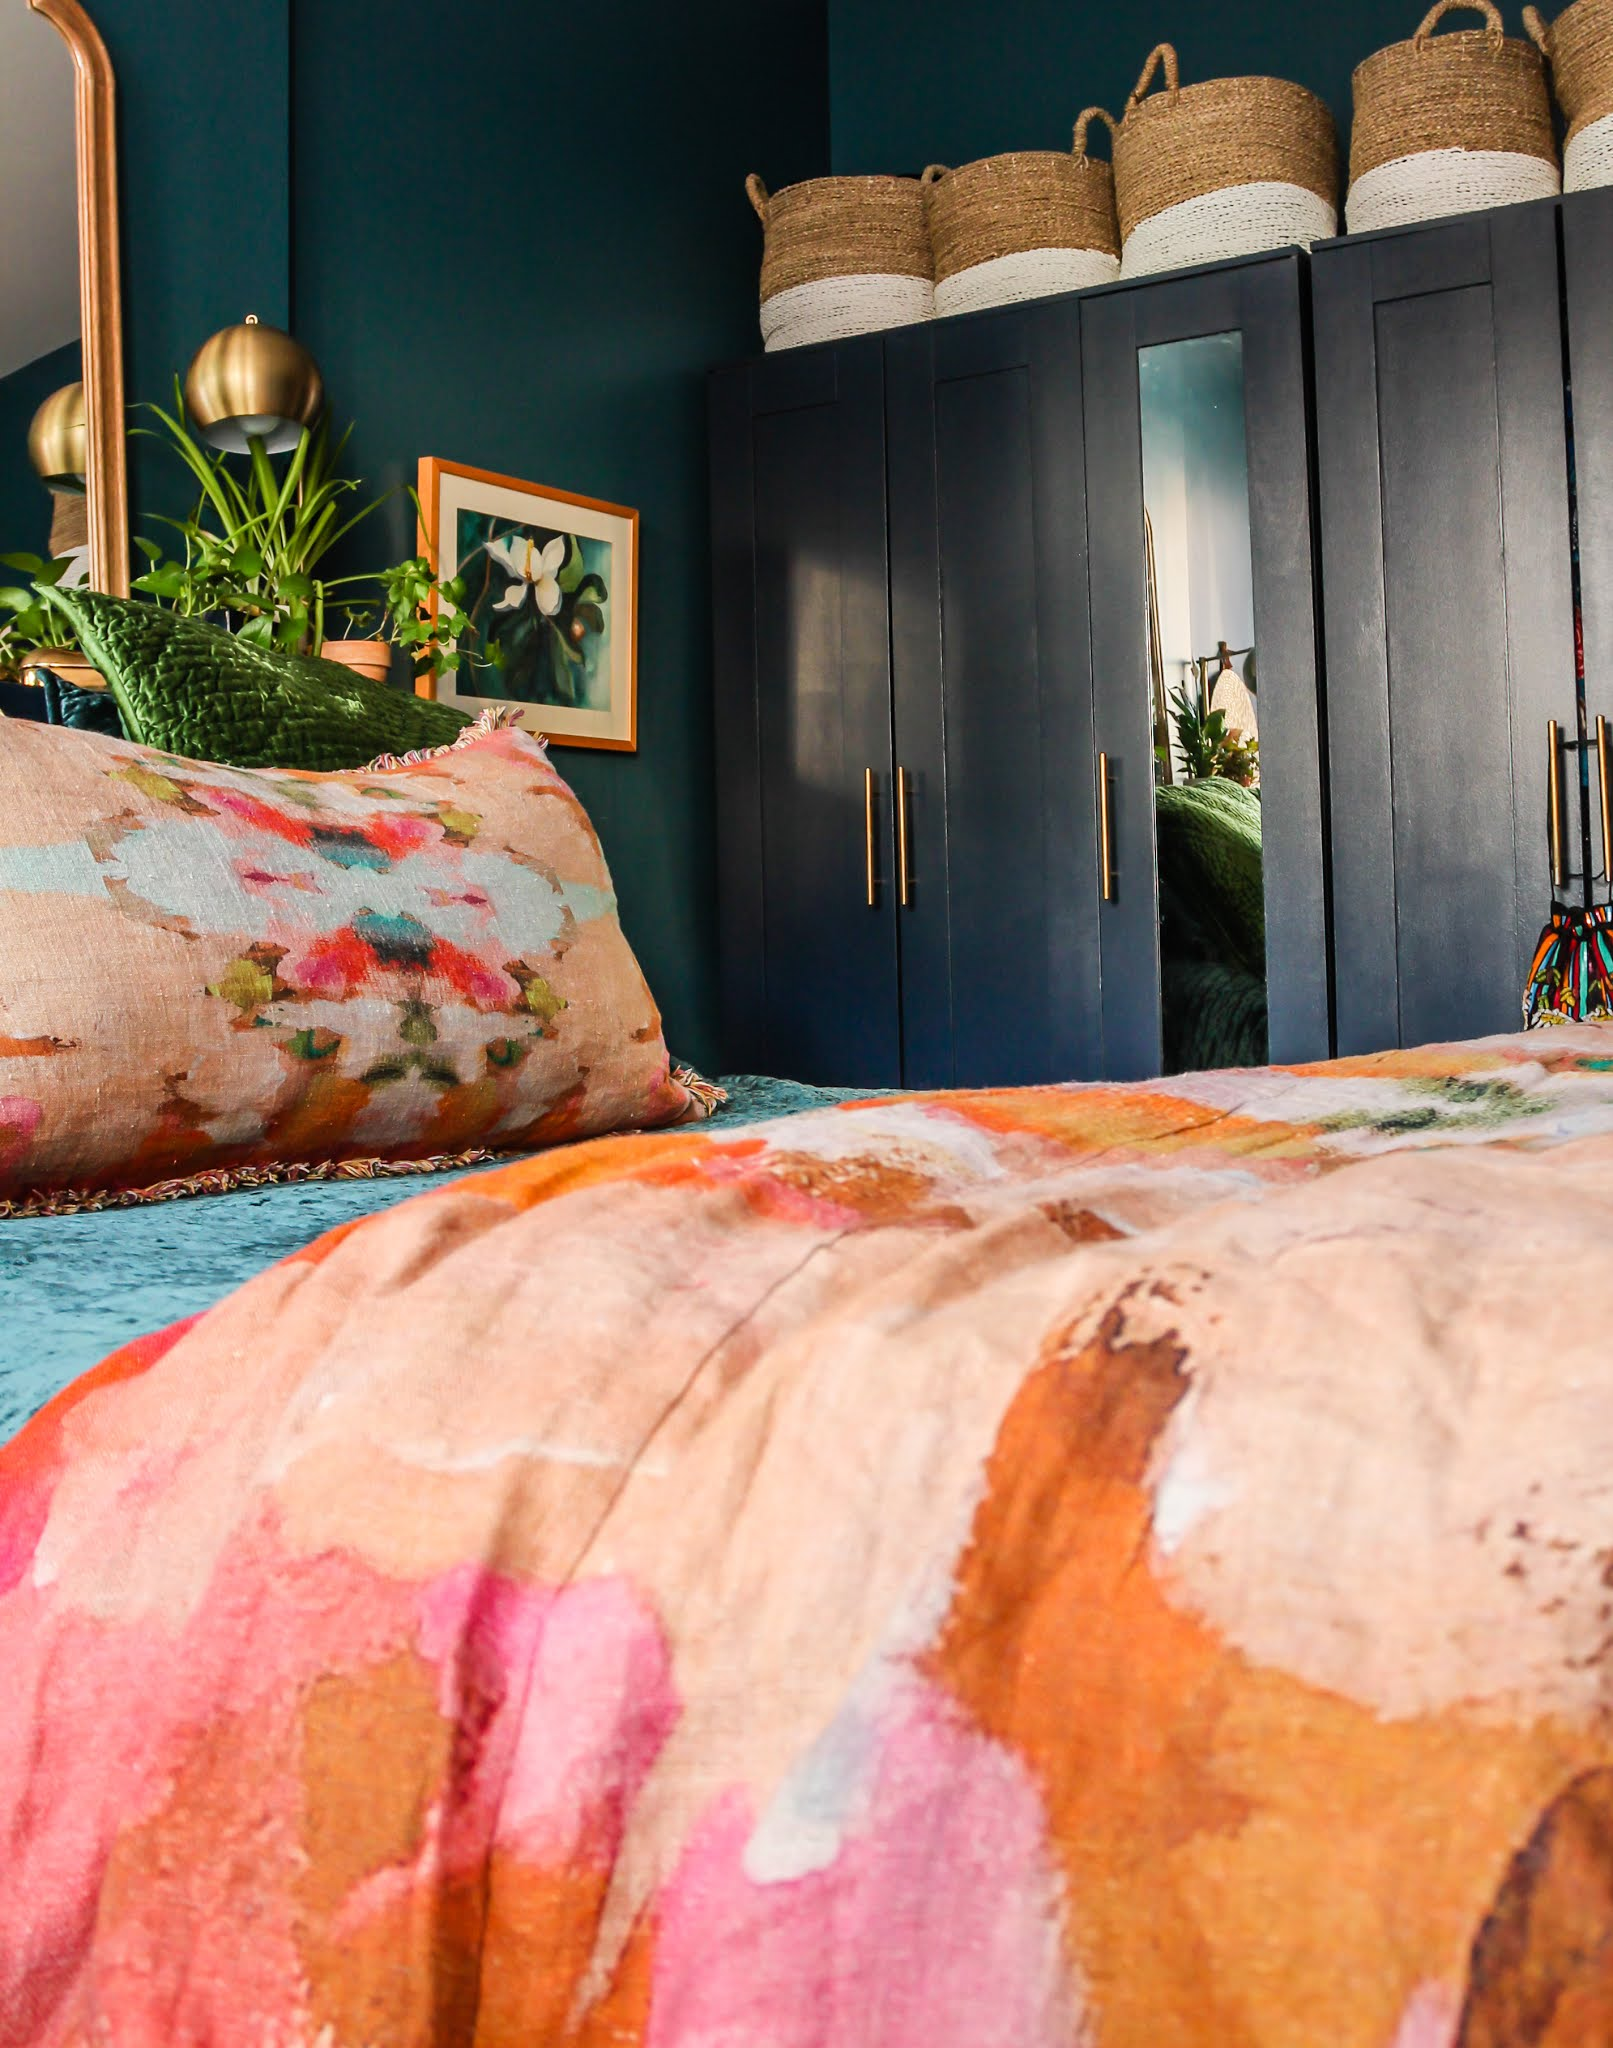 Annie Selke Bedding // Annie Selke // Annie Selke Kenly // Annie Selke Matte Juniper // Annie Selke Simba Jute Runner // Annie Selke Parisian Velvet Evergreen // Colorful bedrooms // Jewel tone bedrooms // rainbow bedrooms // bohemian bedrooms // linen and velvet bedding // velvet bedding // blue and orange decor // blue and pink decor // green and orange decor // Annie Selke Lush Linen Curtains in Slipper Pink // Plants in Bedroom // Ikea furniture hacks // pink and blue bedroom // pink and blue styling